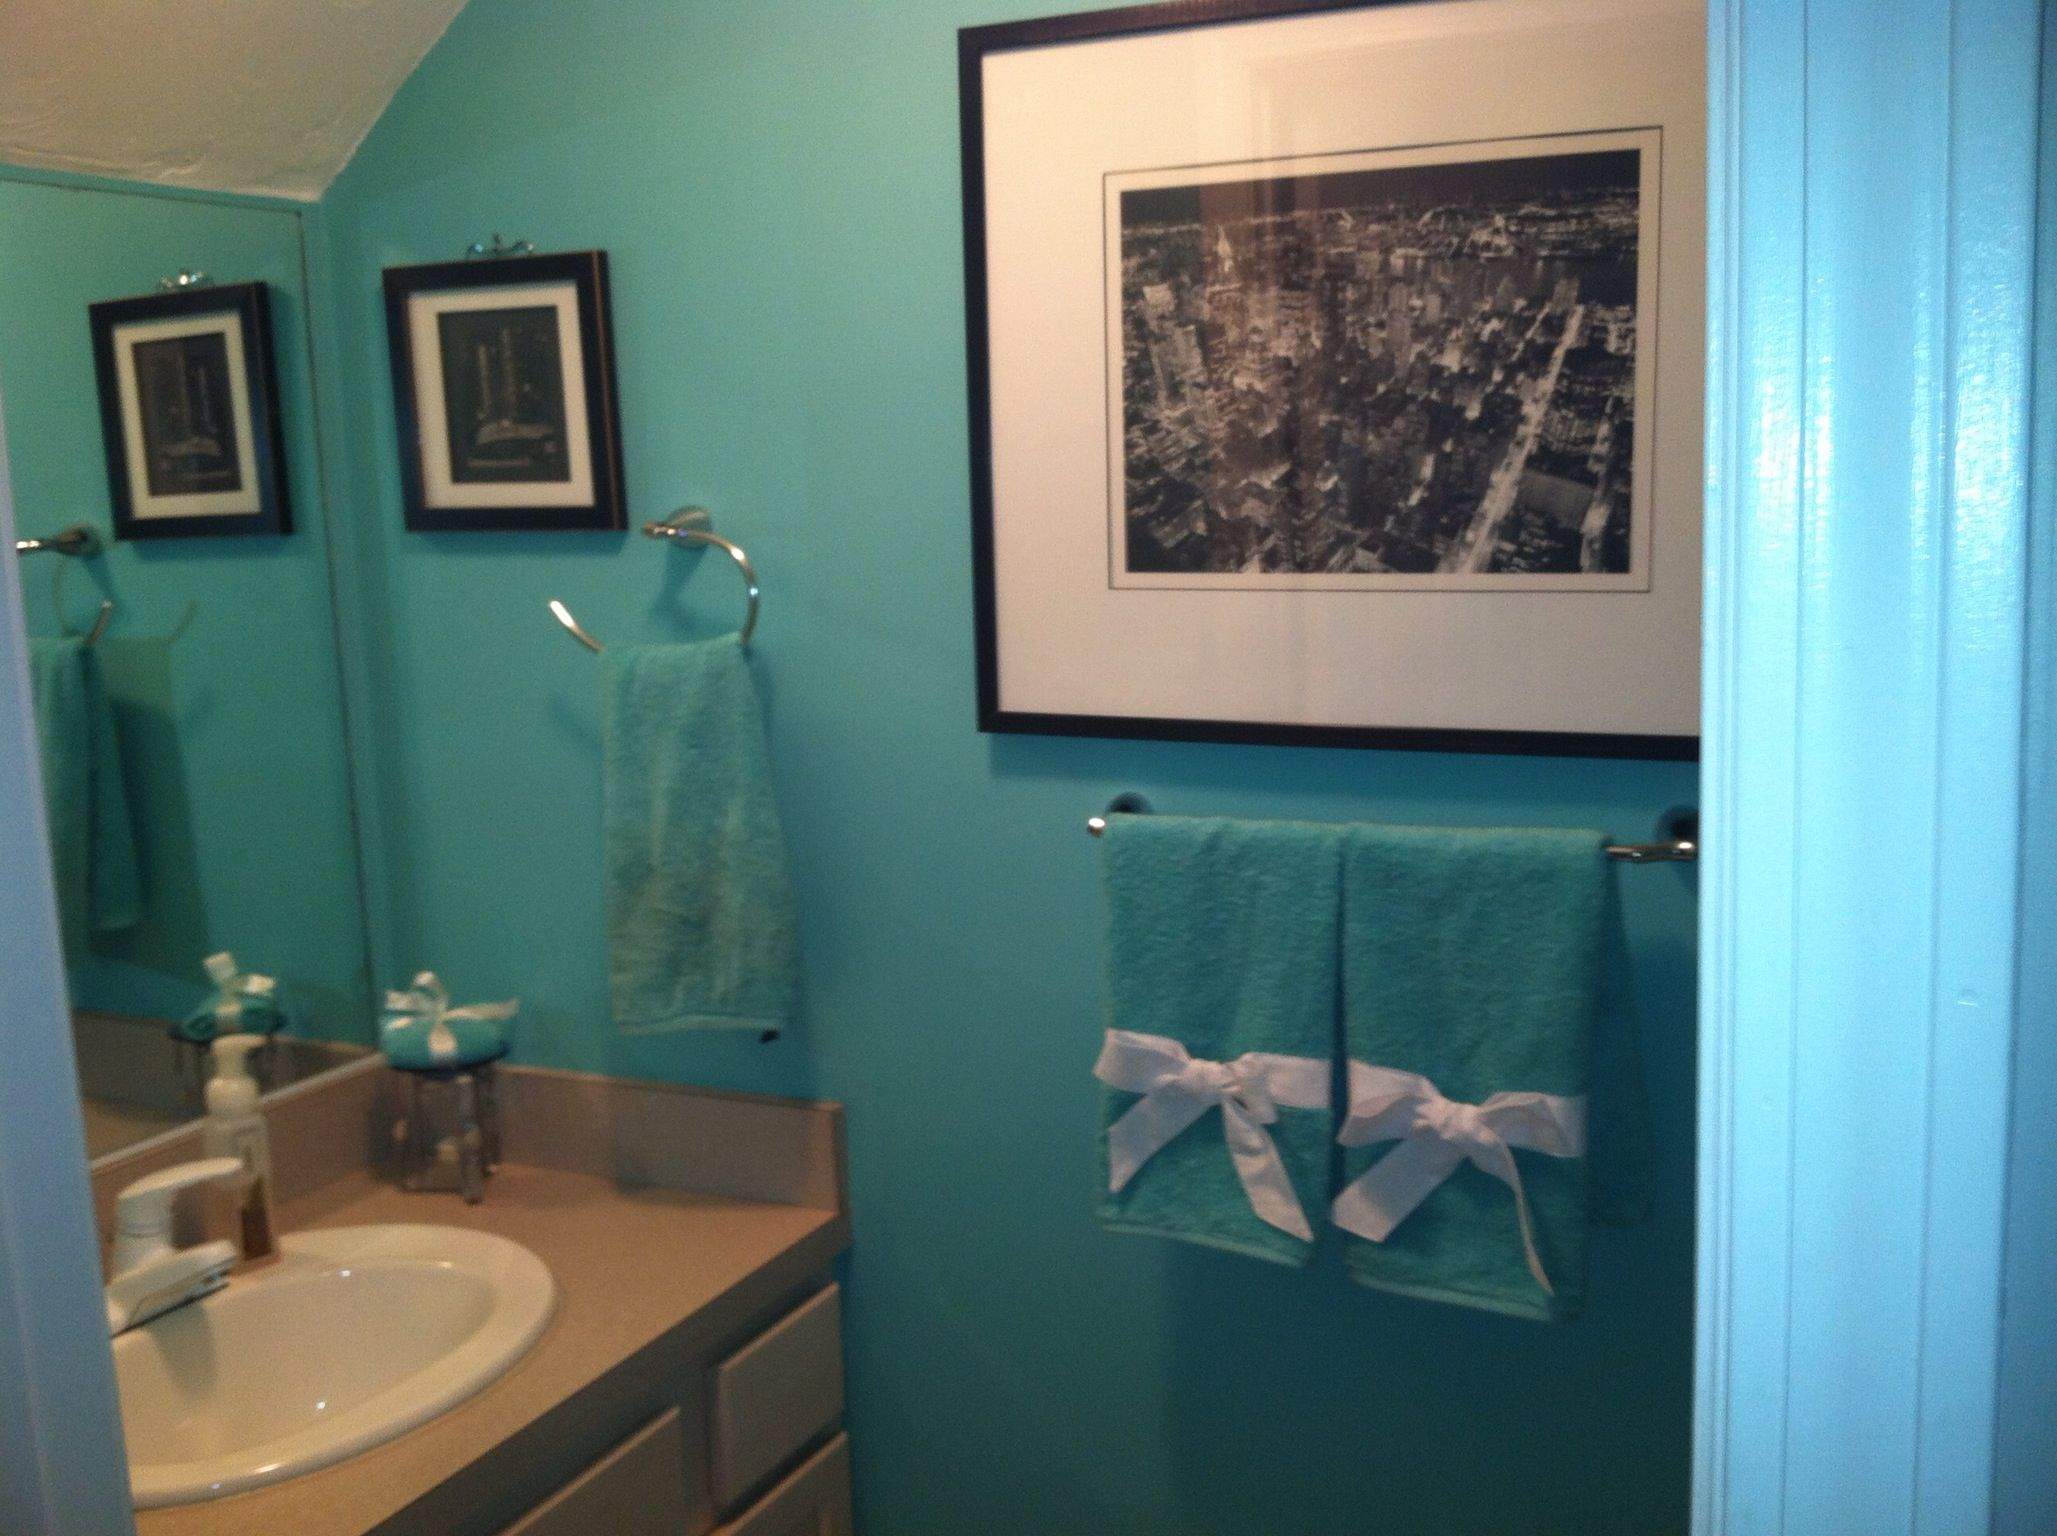 Cute apartment bathroom ideas - Cute Decor Towel Idea For Tiffany Themed Bathroom